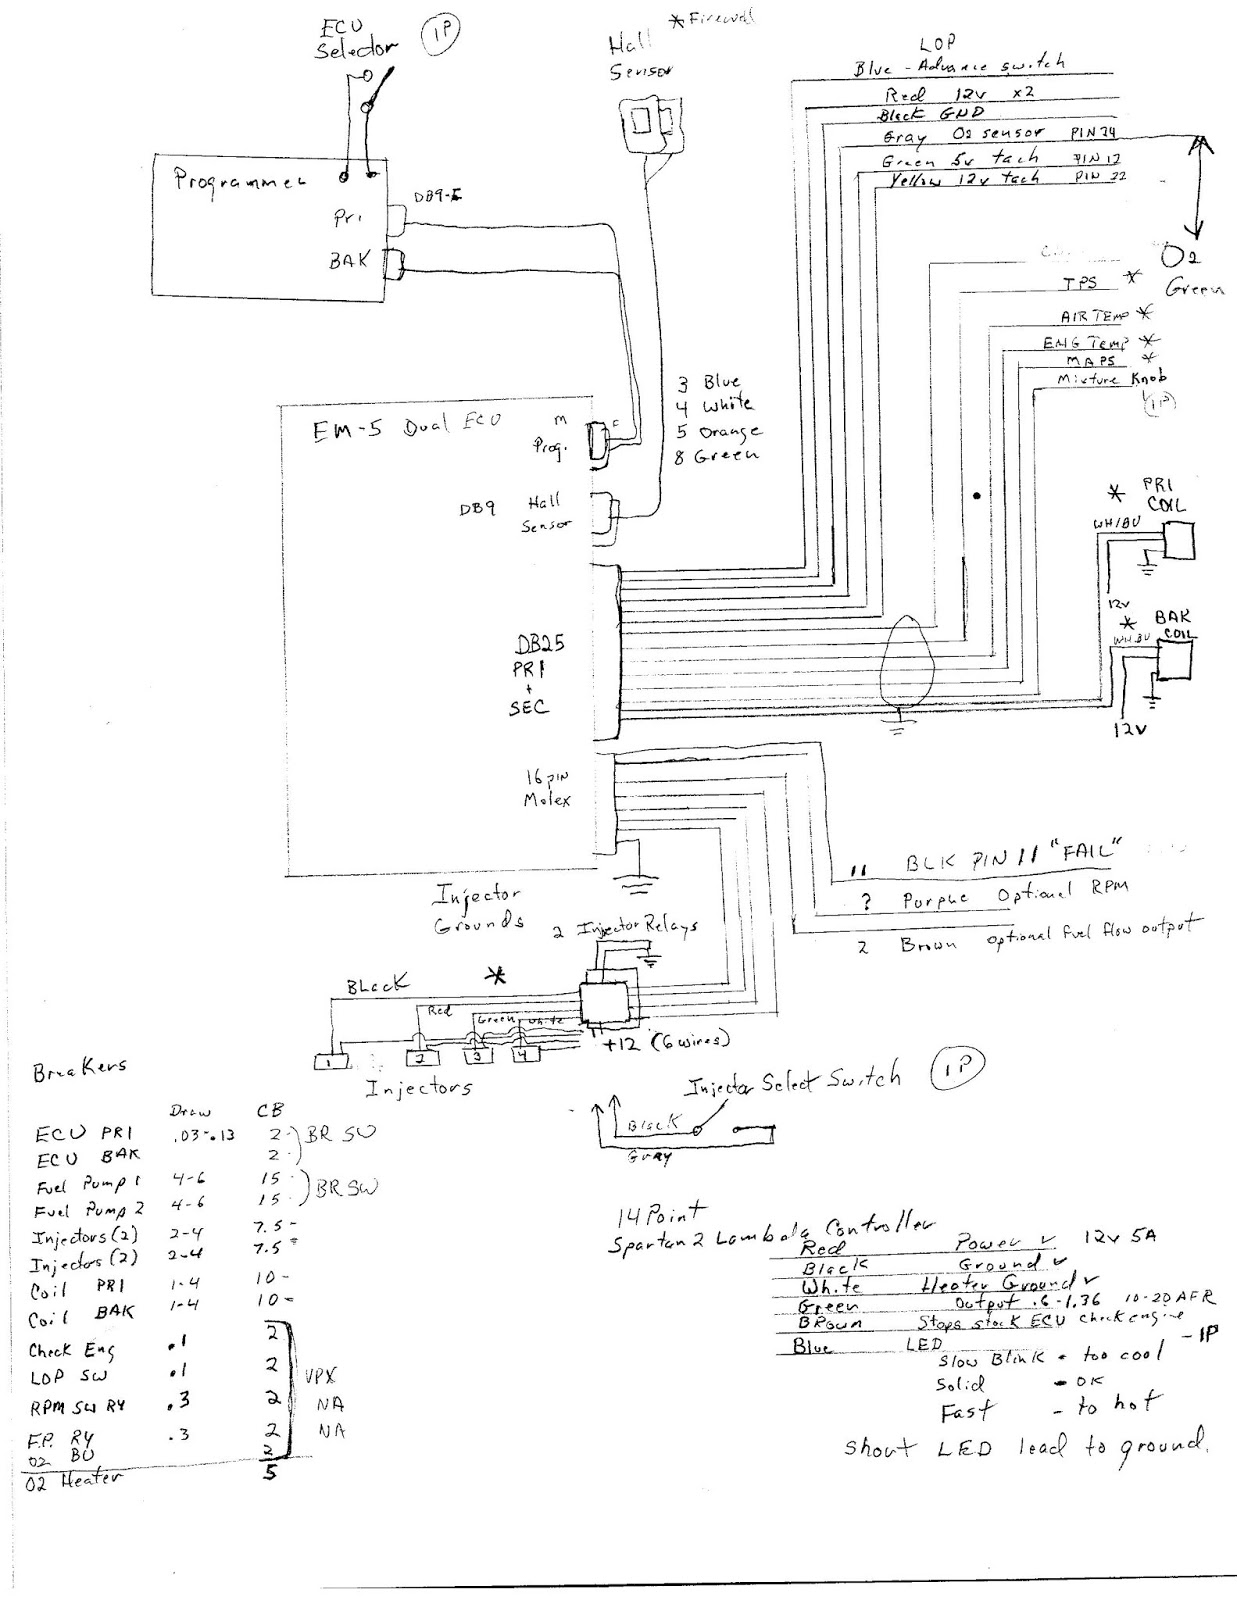 pin assignments for firewall bulkhead connectors and other electrical wiring info  [ 1237 x 1600 Pixel ]